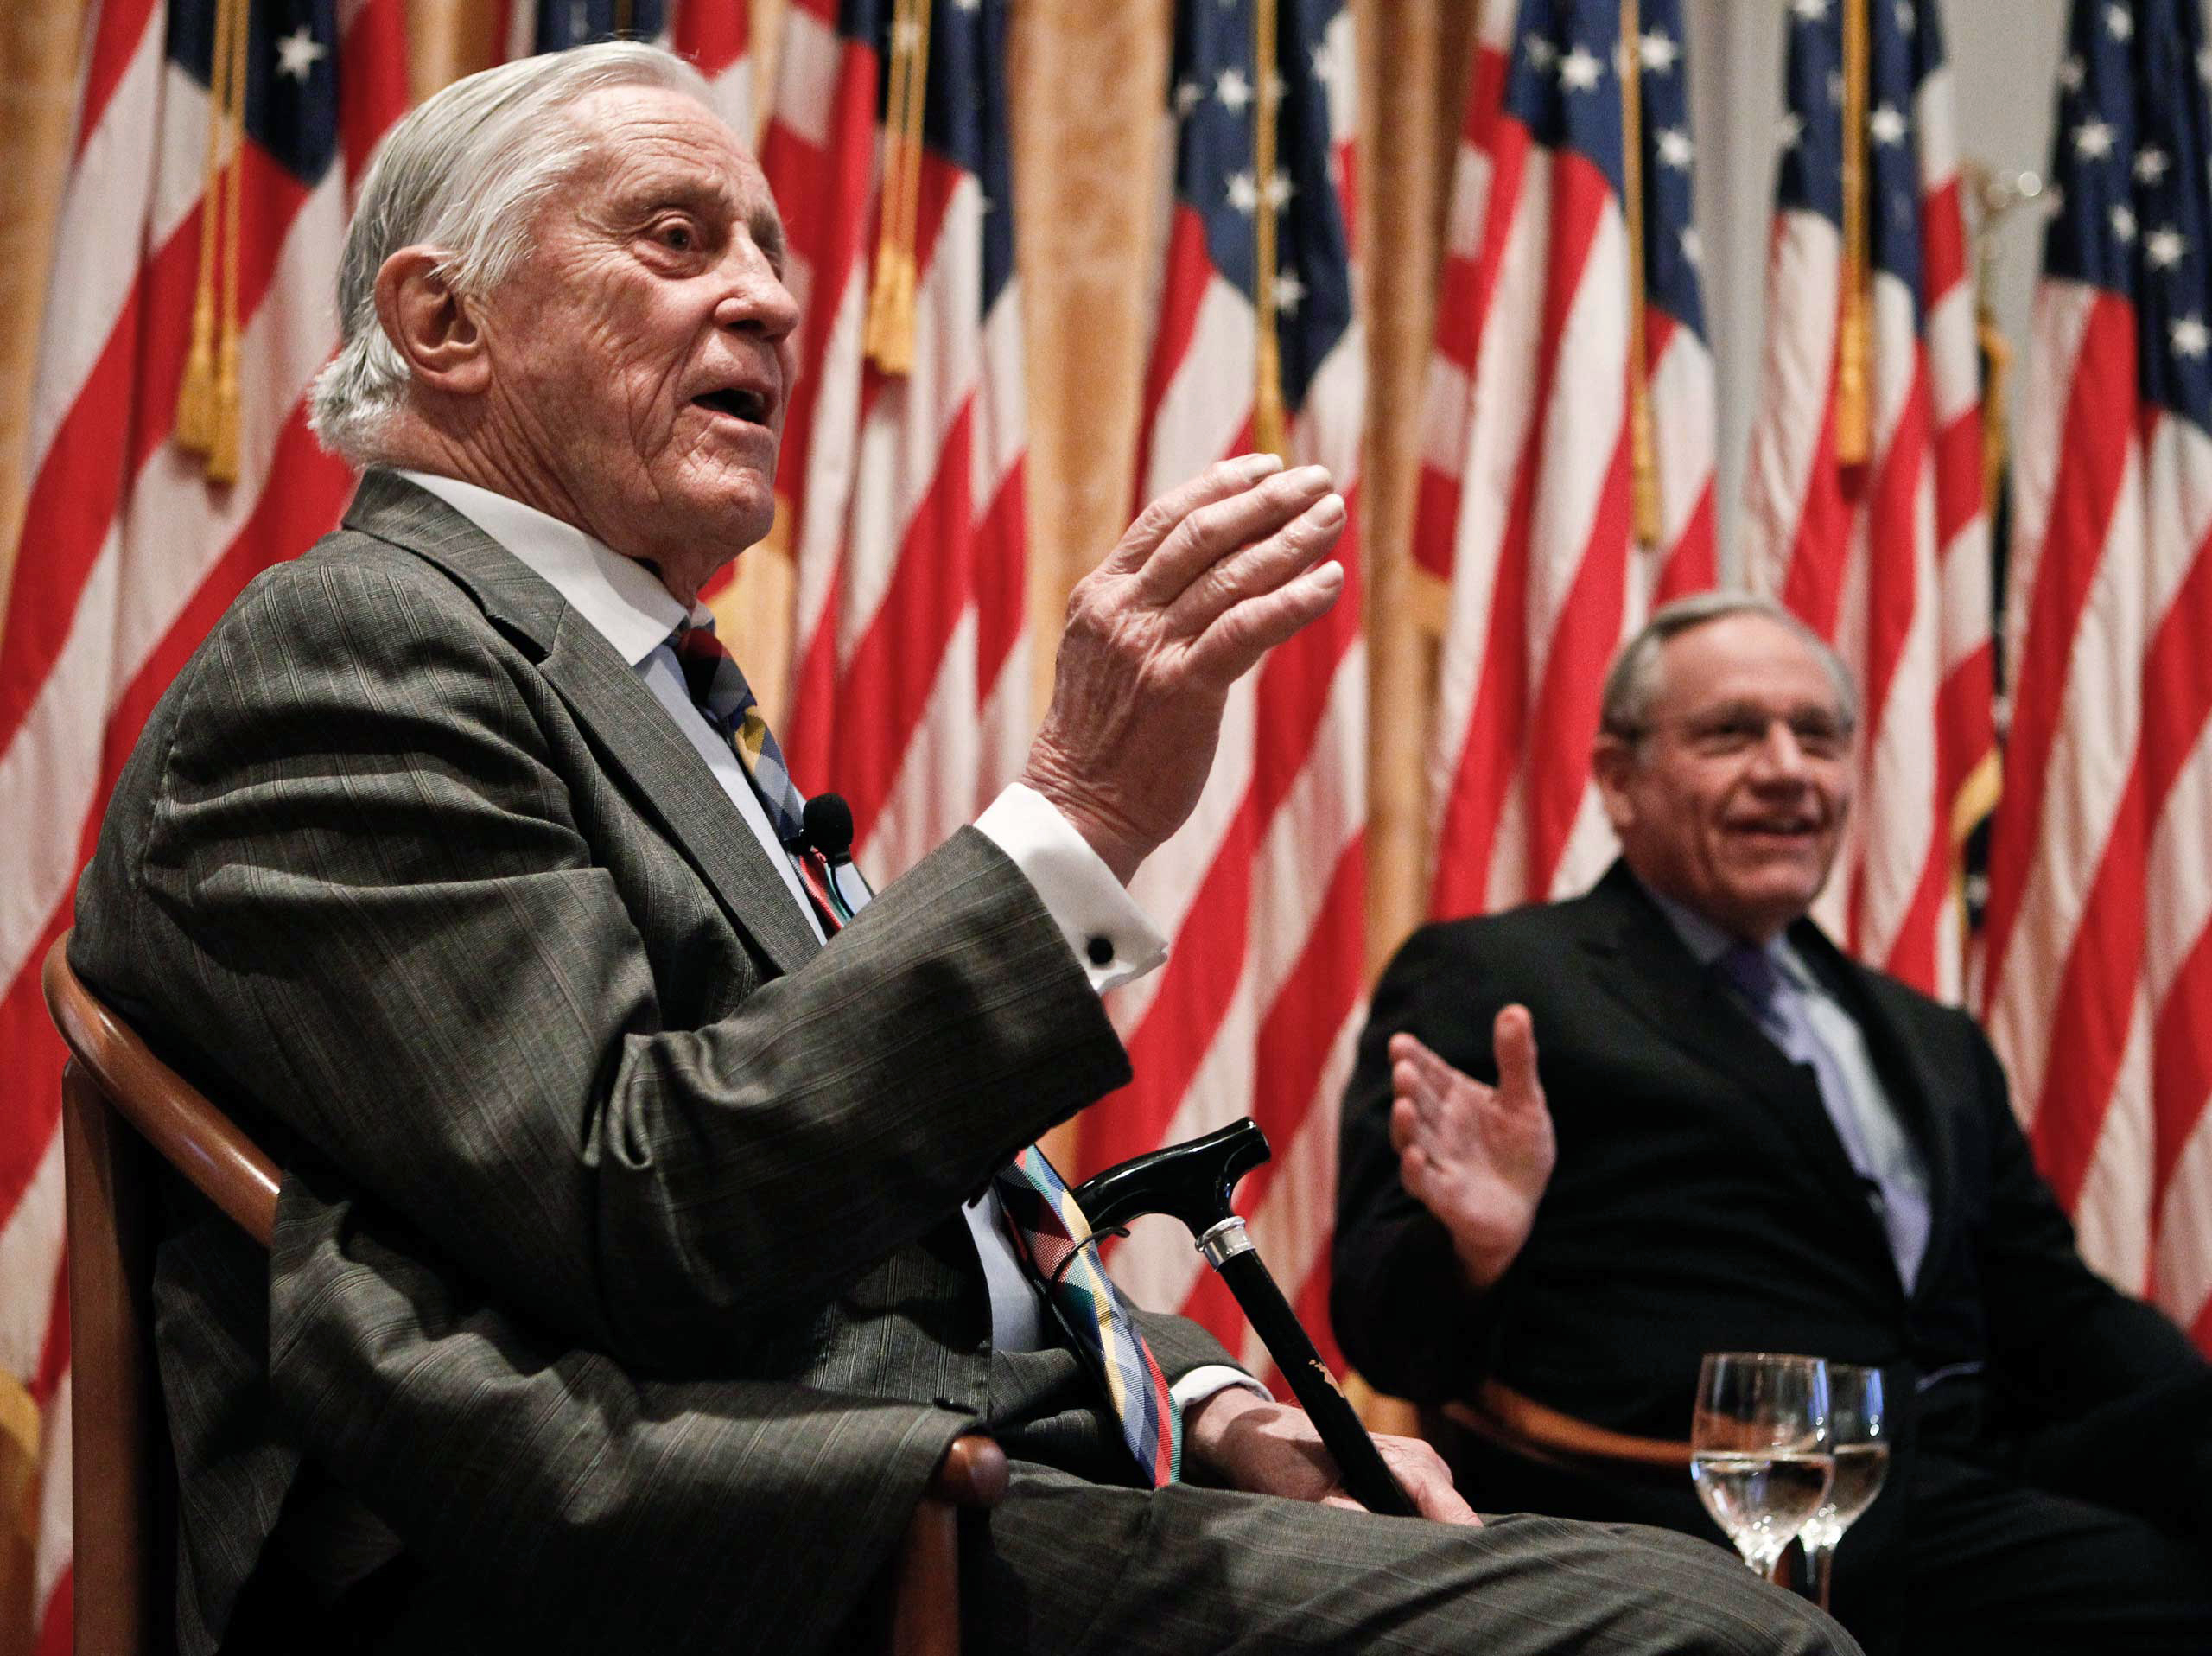 From Left: Benjamin Bradlee and reporter Bob Woodward talk during the program  Remembering Watergate: A Conversation  at the Richard Nixon Presidential Library and Museum in Yorba Linda, Calif., on April 18, 2011.